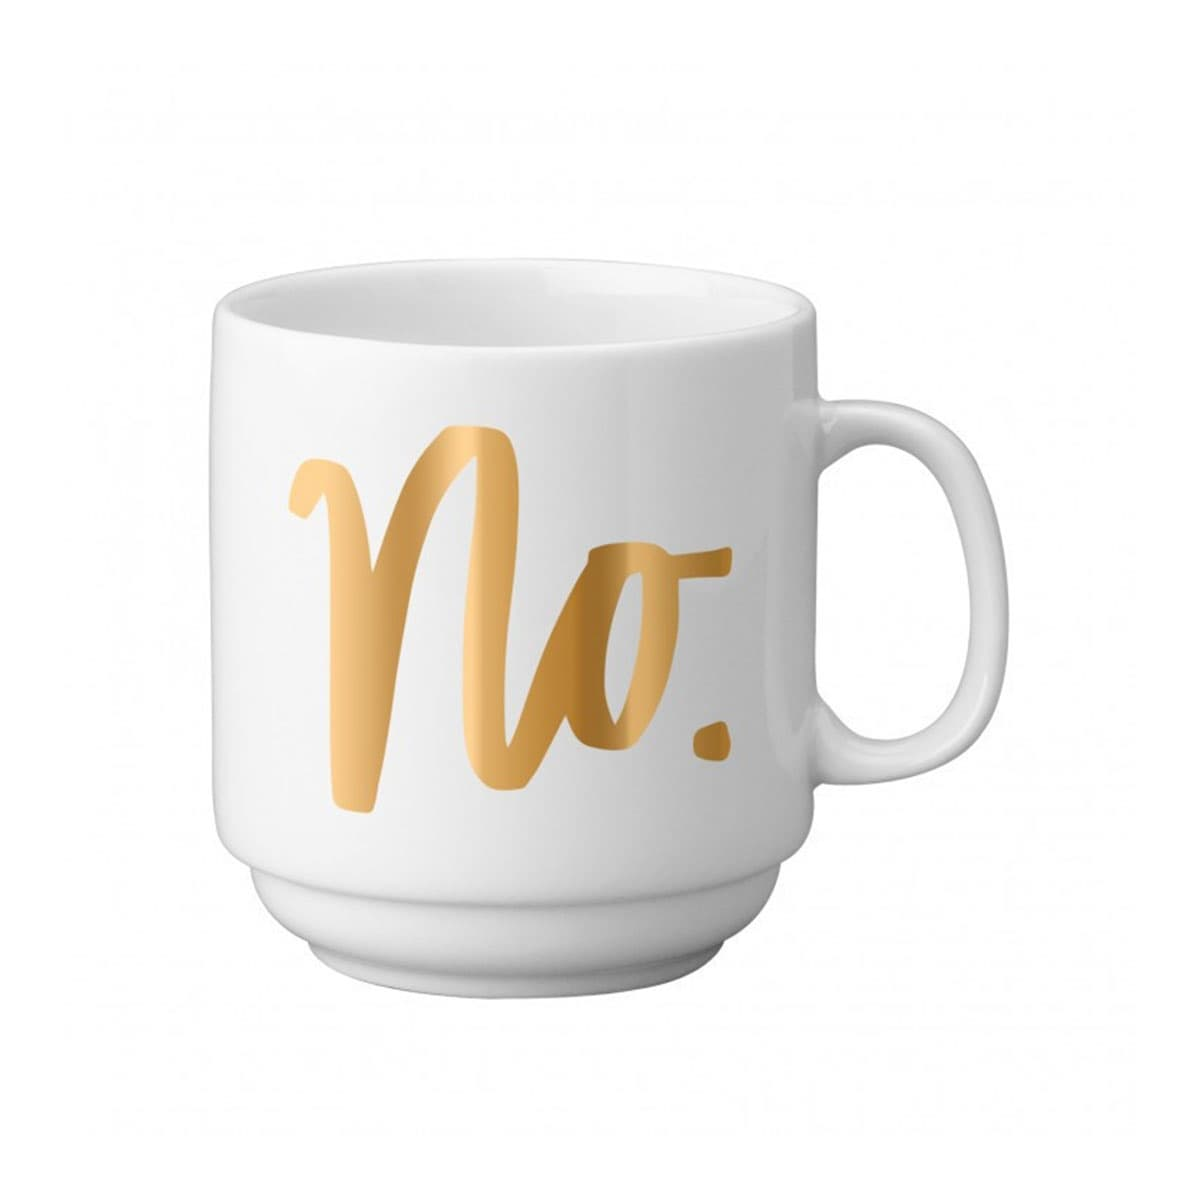 10 Wacky Mugs to Fun Up Your Desk: gallery image 9